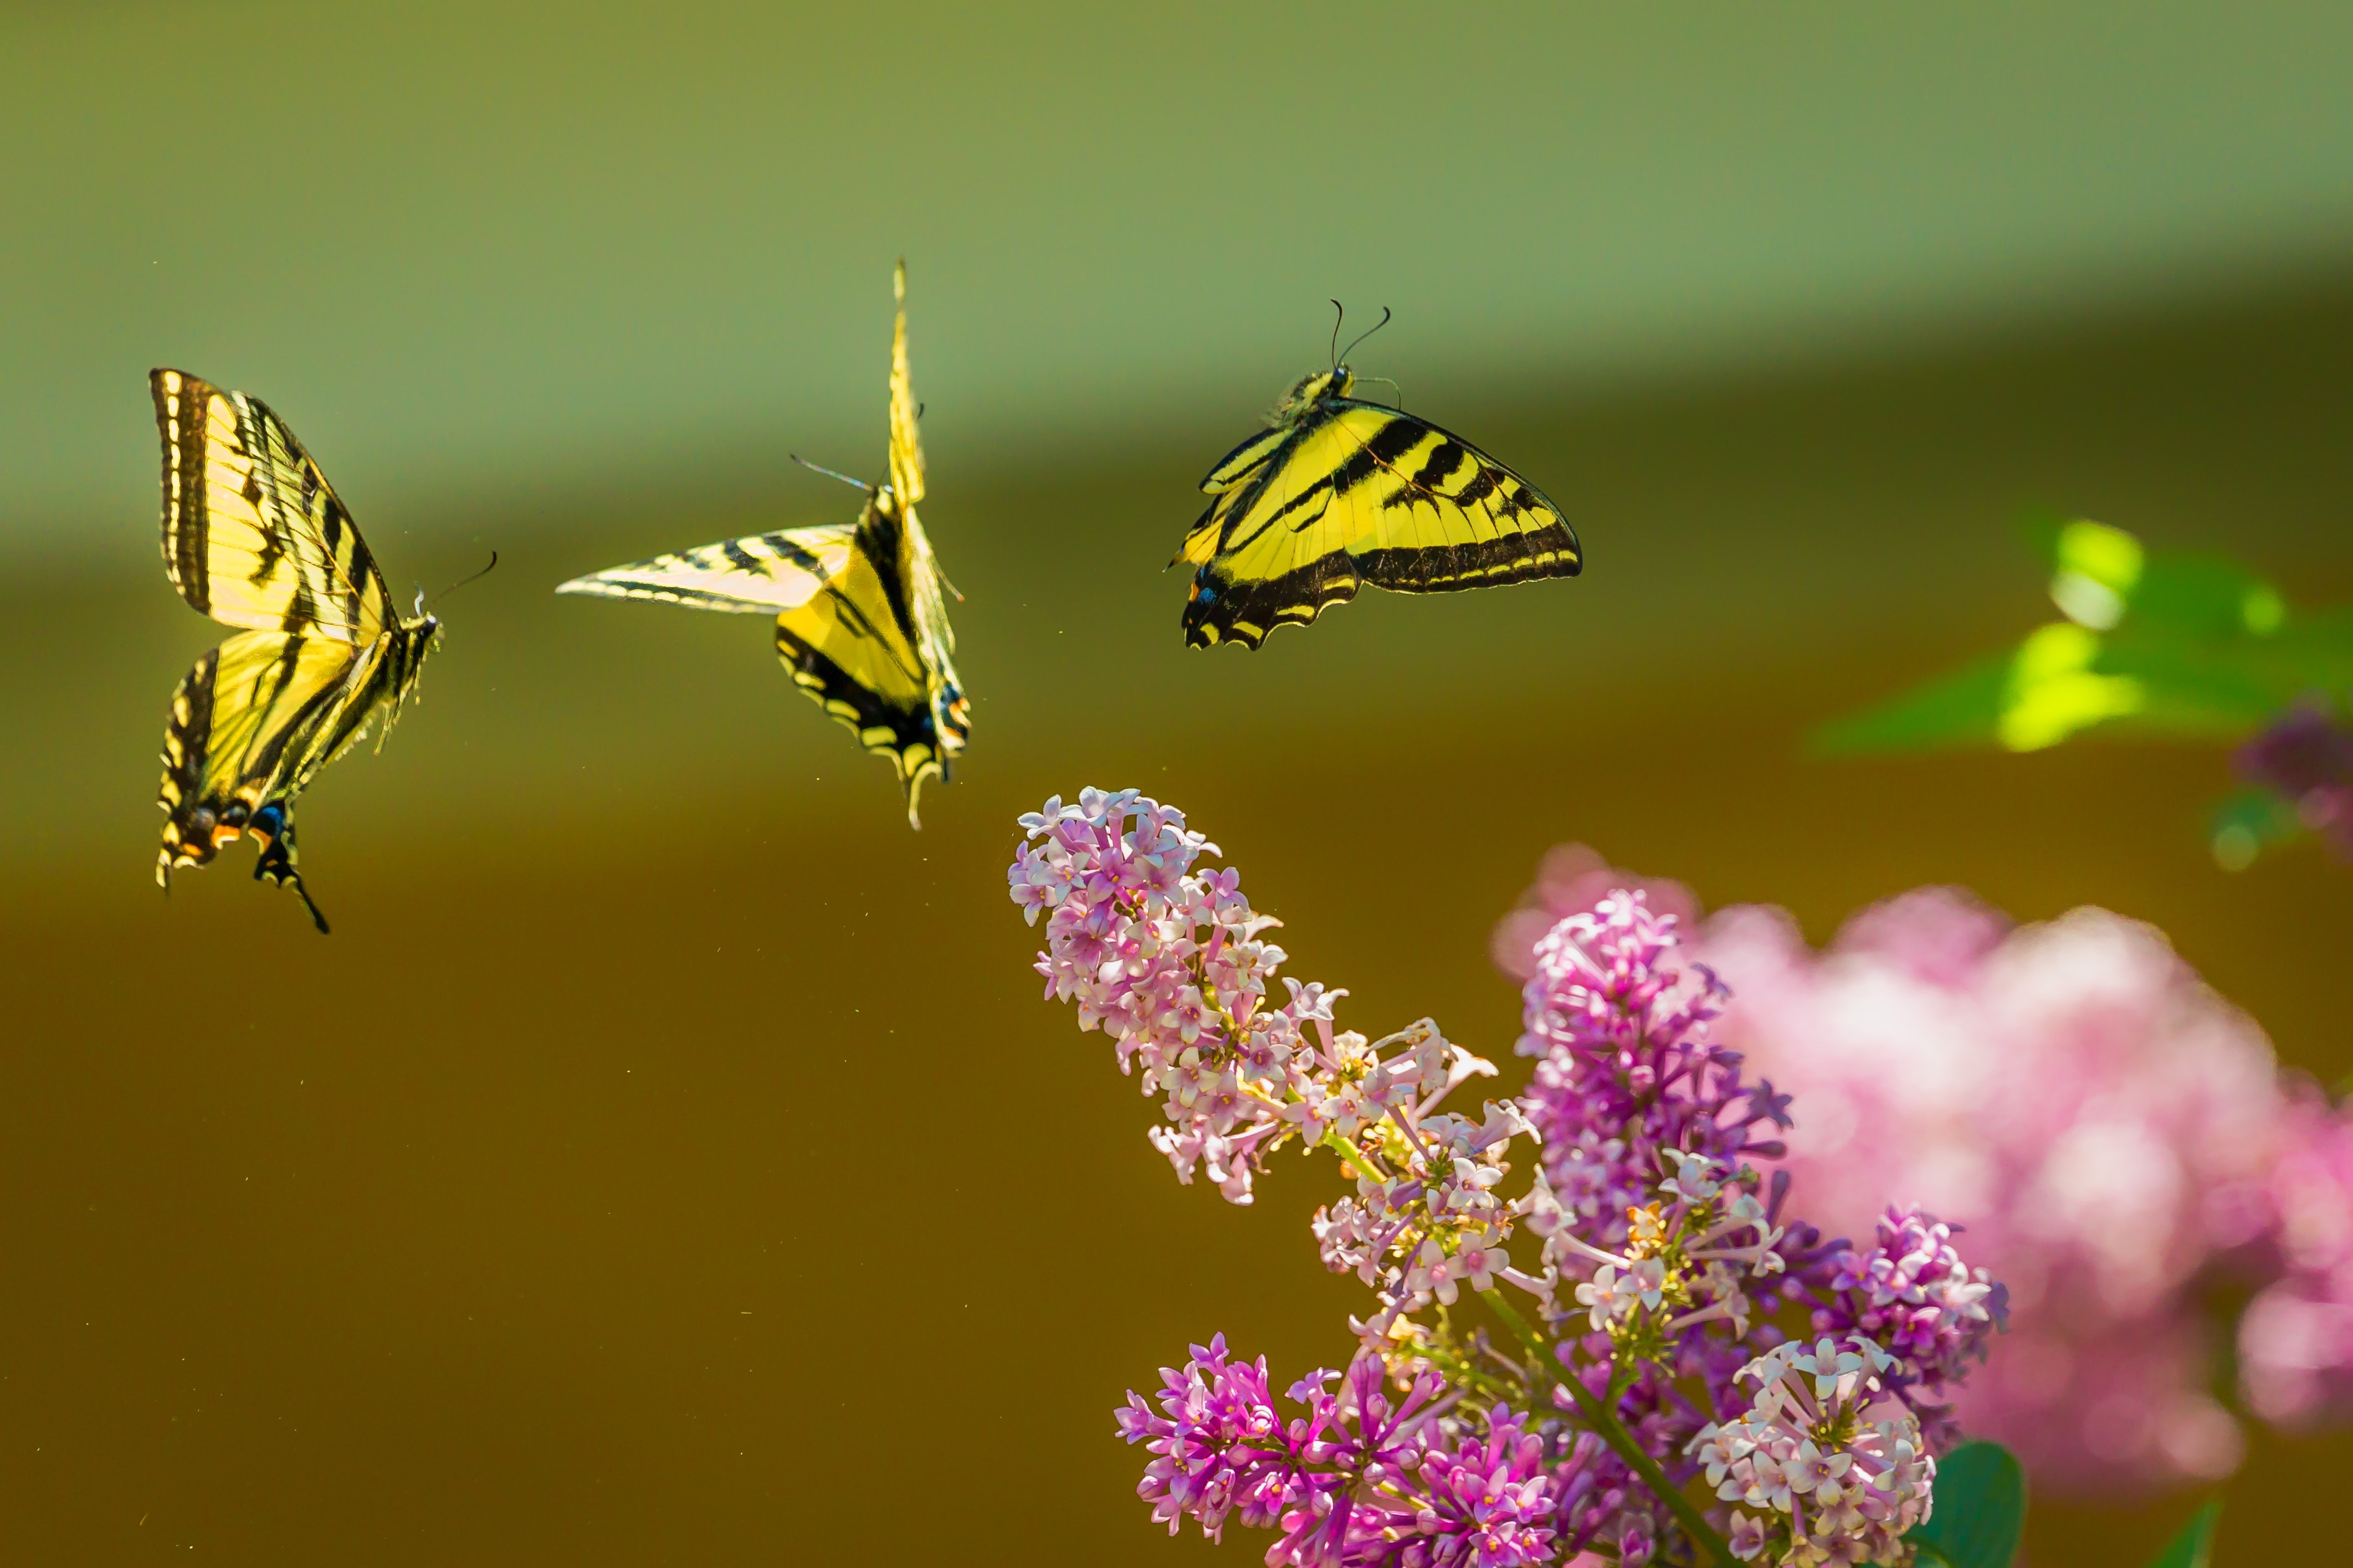 Yellow and black butterflies flying above pink flowers